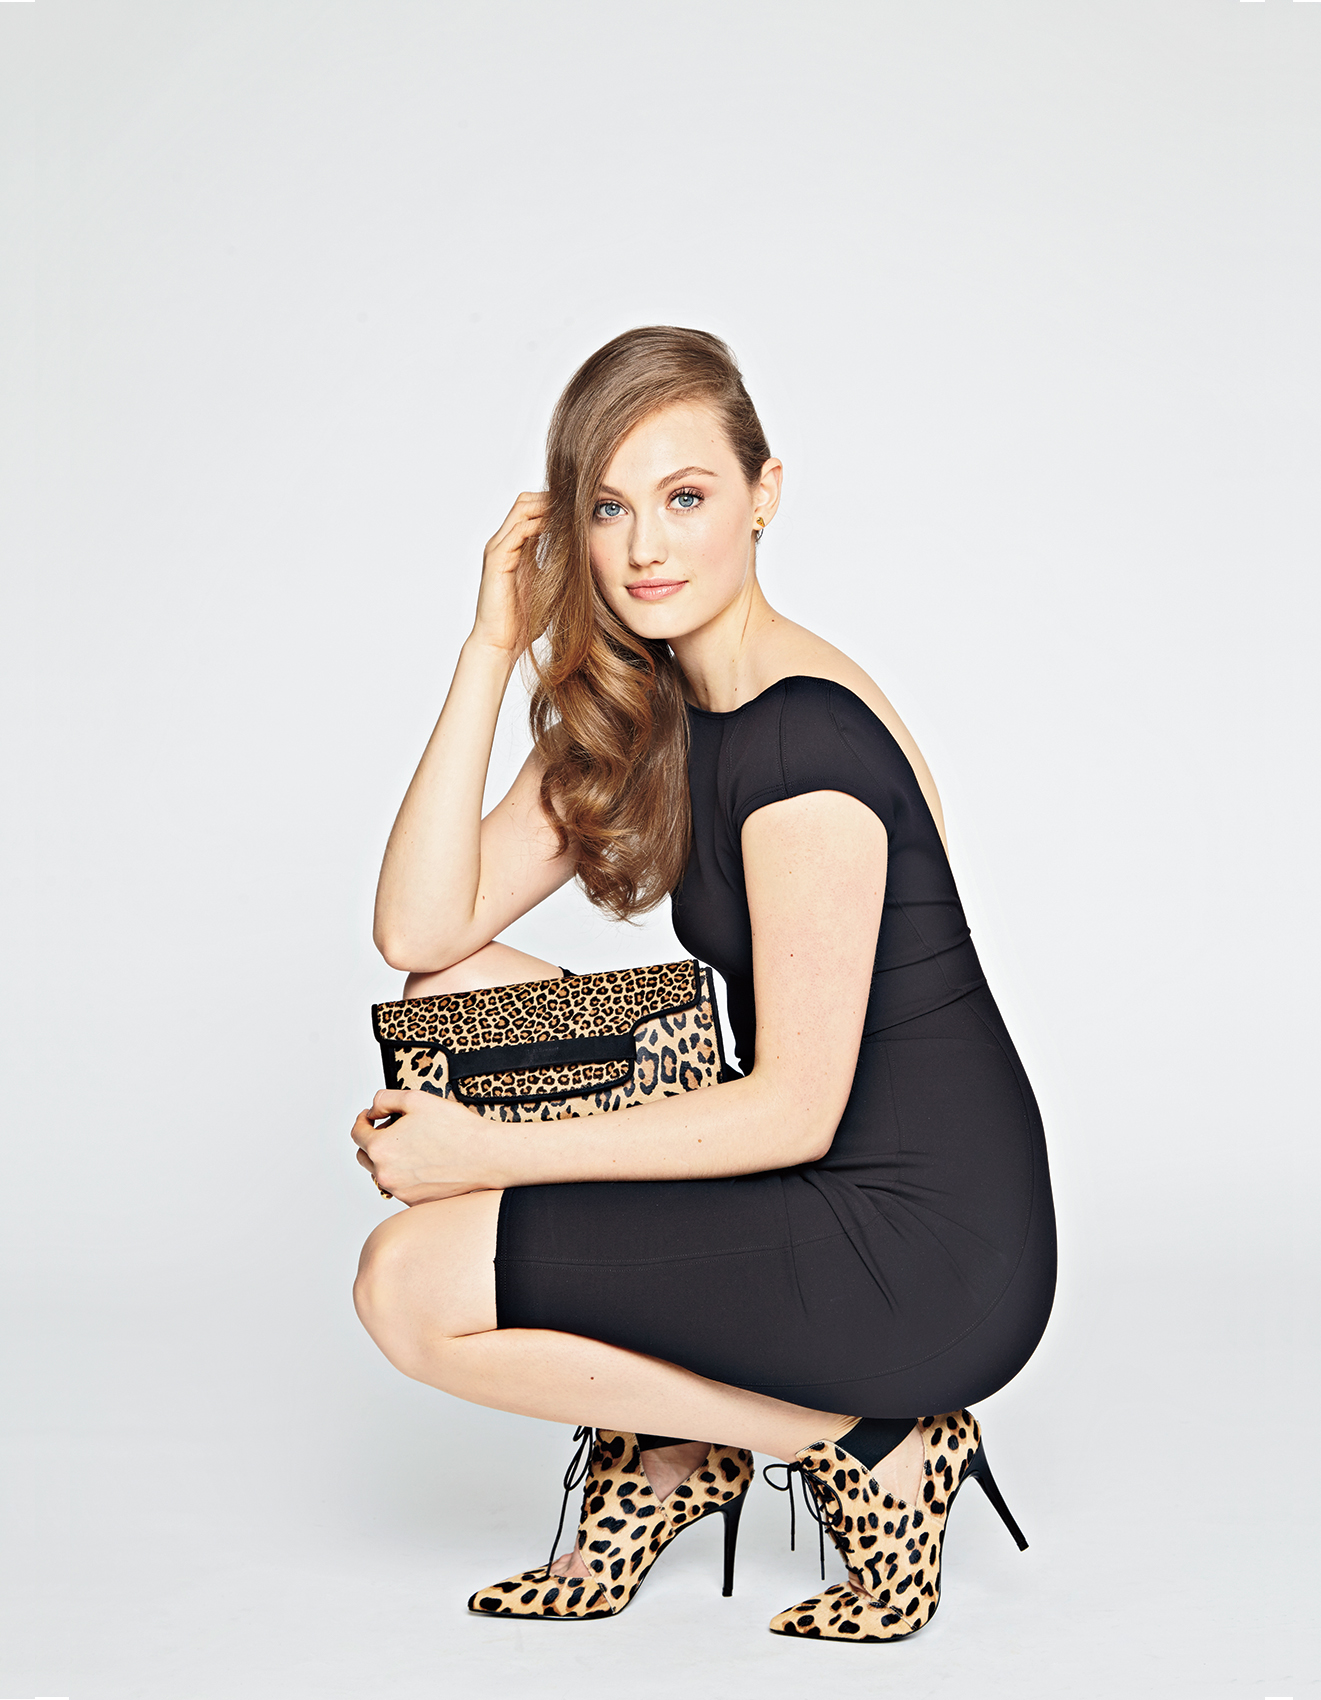 Model wearing black dress and leopard print accessories